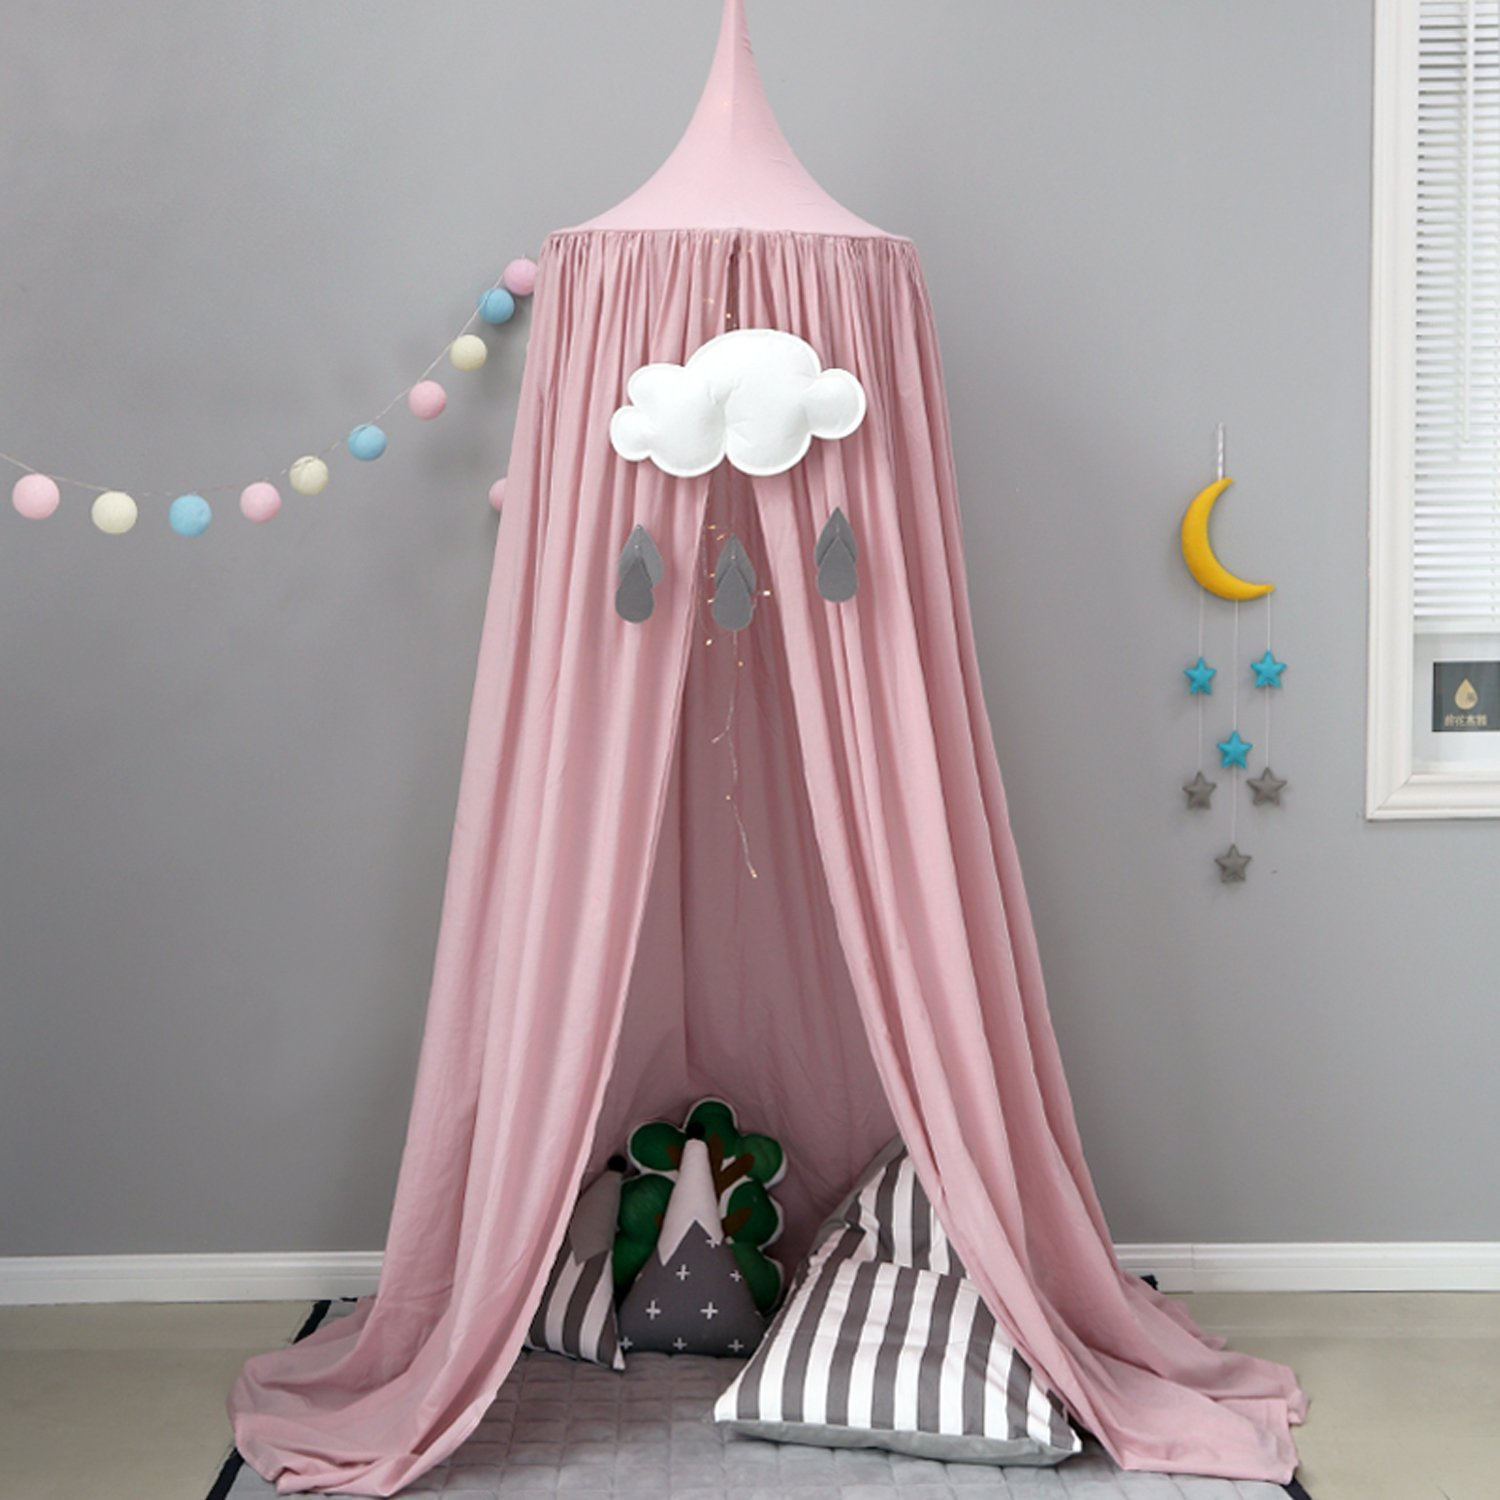 Cotton Canvas Dome Bed Canopy Kids Princess Play Tent Mosquito Net for Baby Kids Indoor Outdoor Playing Reading Height 240cm Grey Pink (Pink) CSS